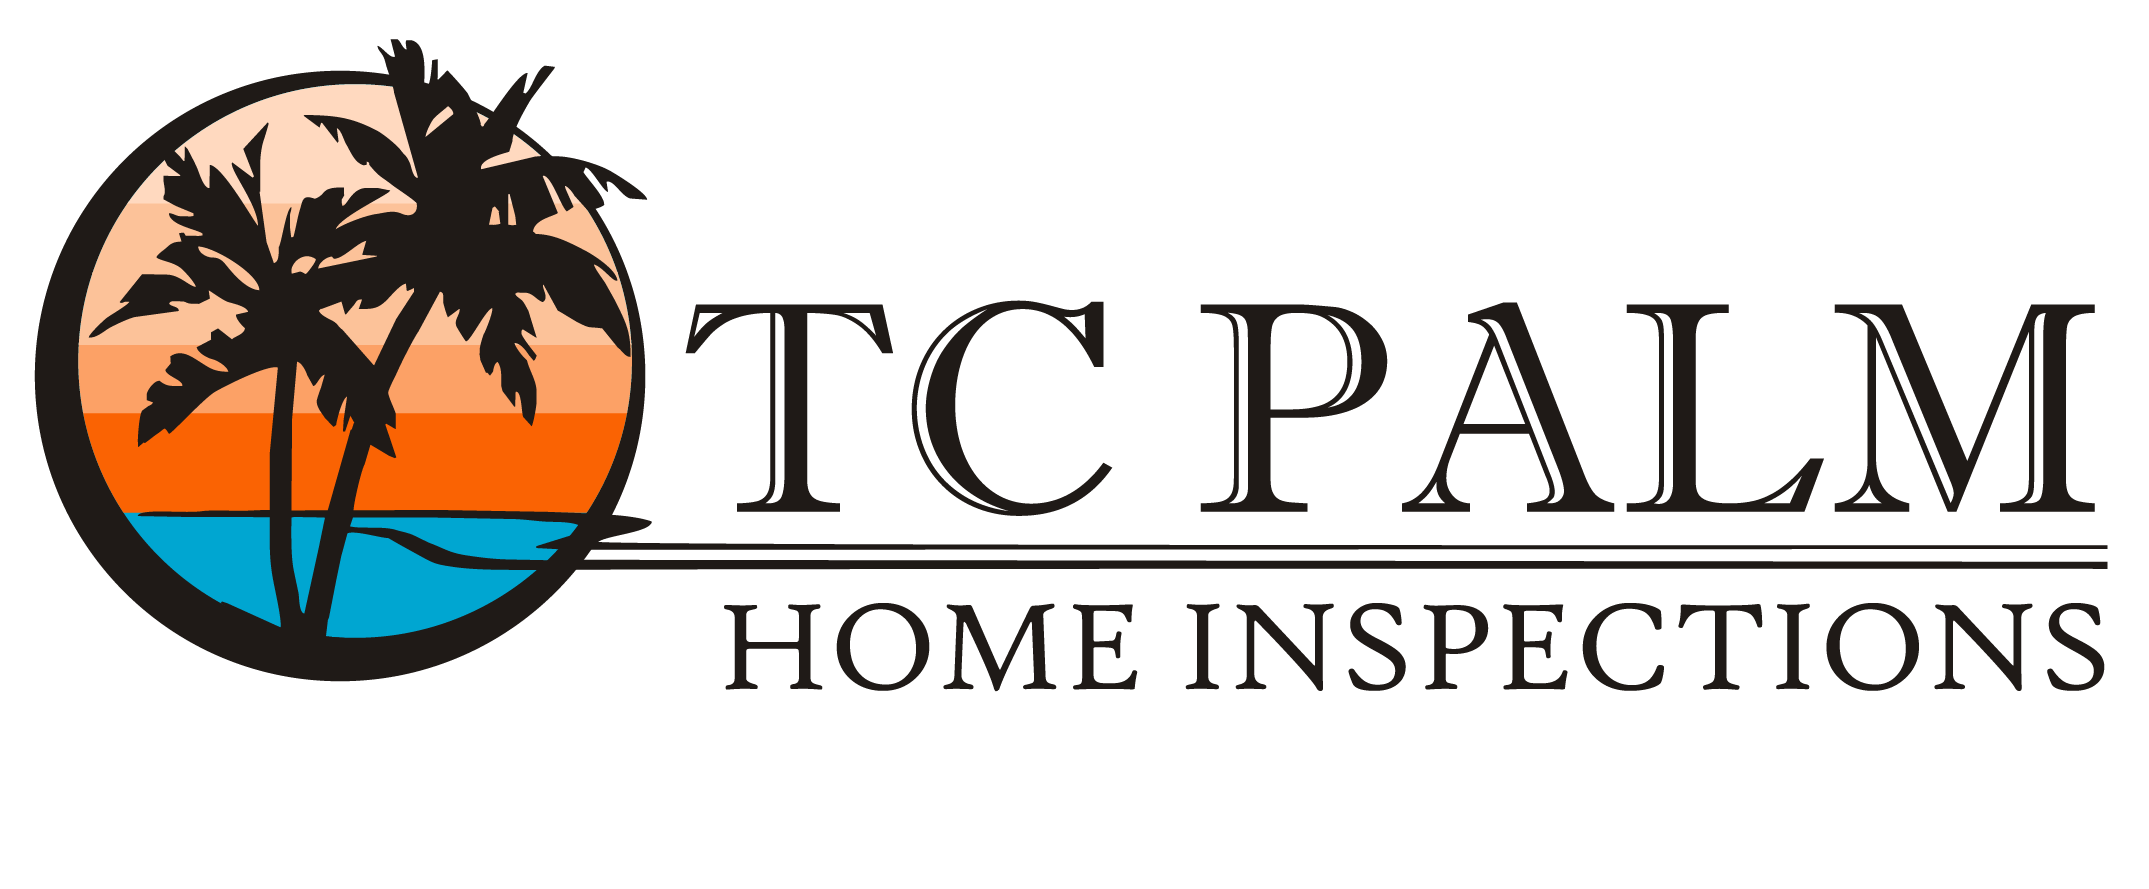 TCPALM Home Inspections